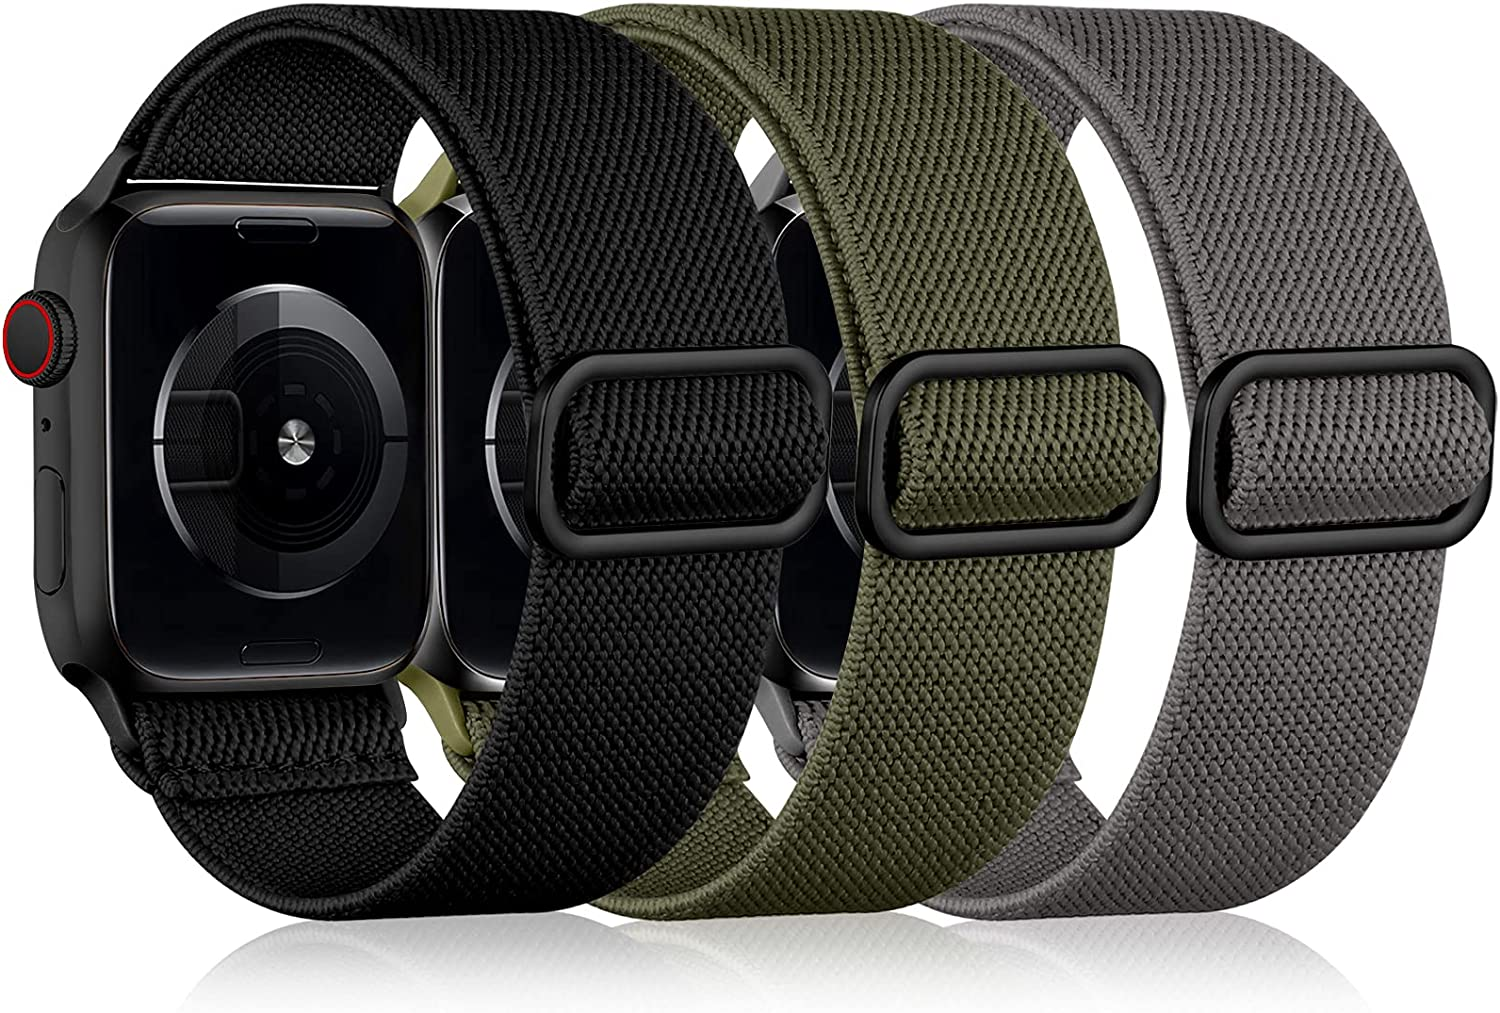 DaQin 3 Pack Stretchy Nylon Solo Loop Bands Compatible with Apple Watch Band 38mm 40mm 42mm 44mm, Adjustable Stretch Braided Sport Elastics Strap for Apple Watch SE iWatch Series 6/5/4/3/2/1 Women Men